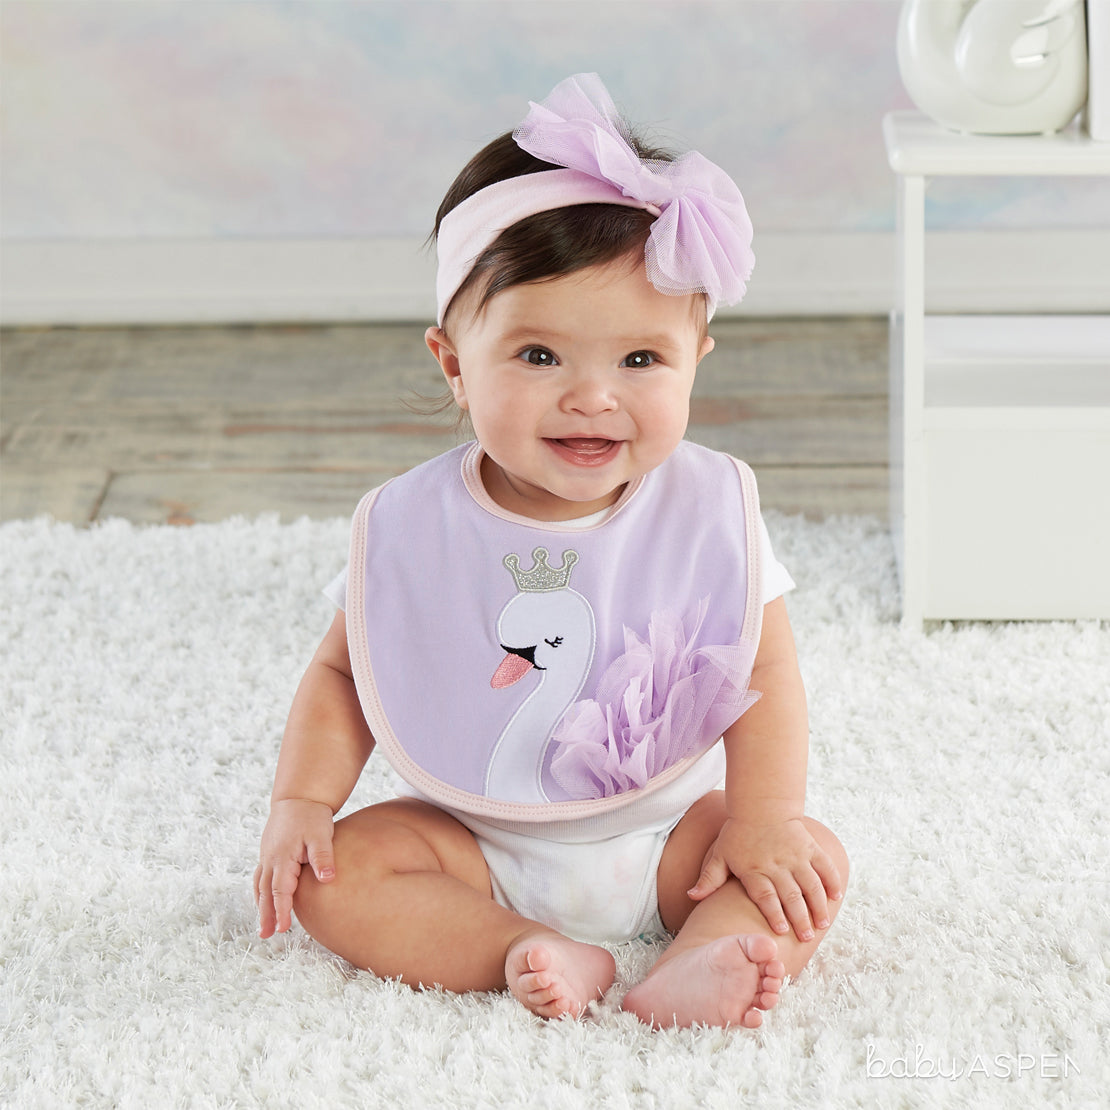 Swan Bib & Headband on Baby | Magical Gifts For Your Fairy Princess | Baby Aspen